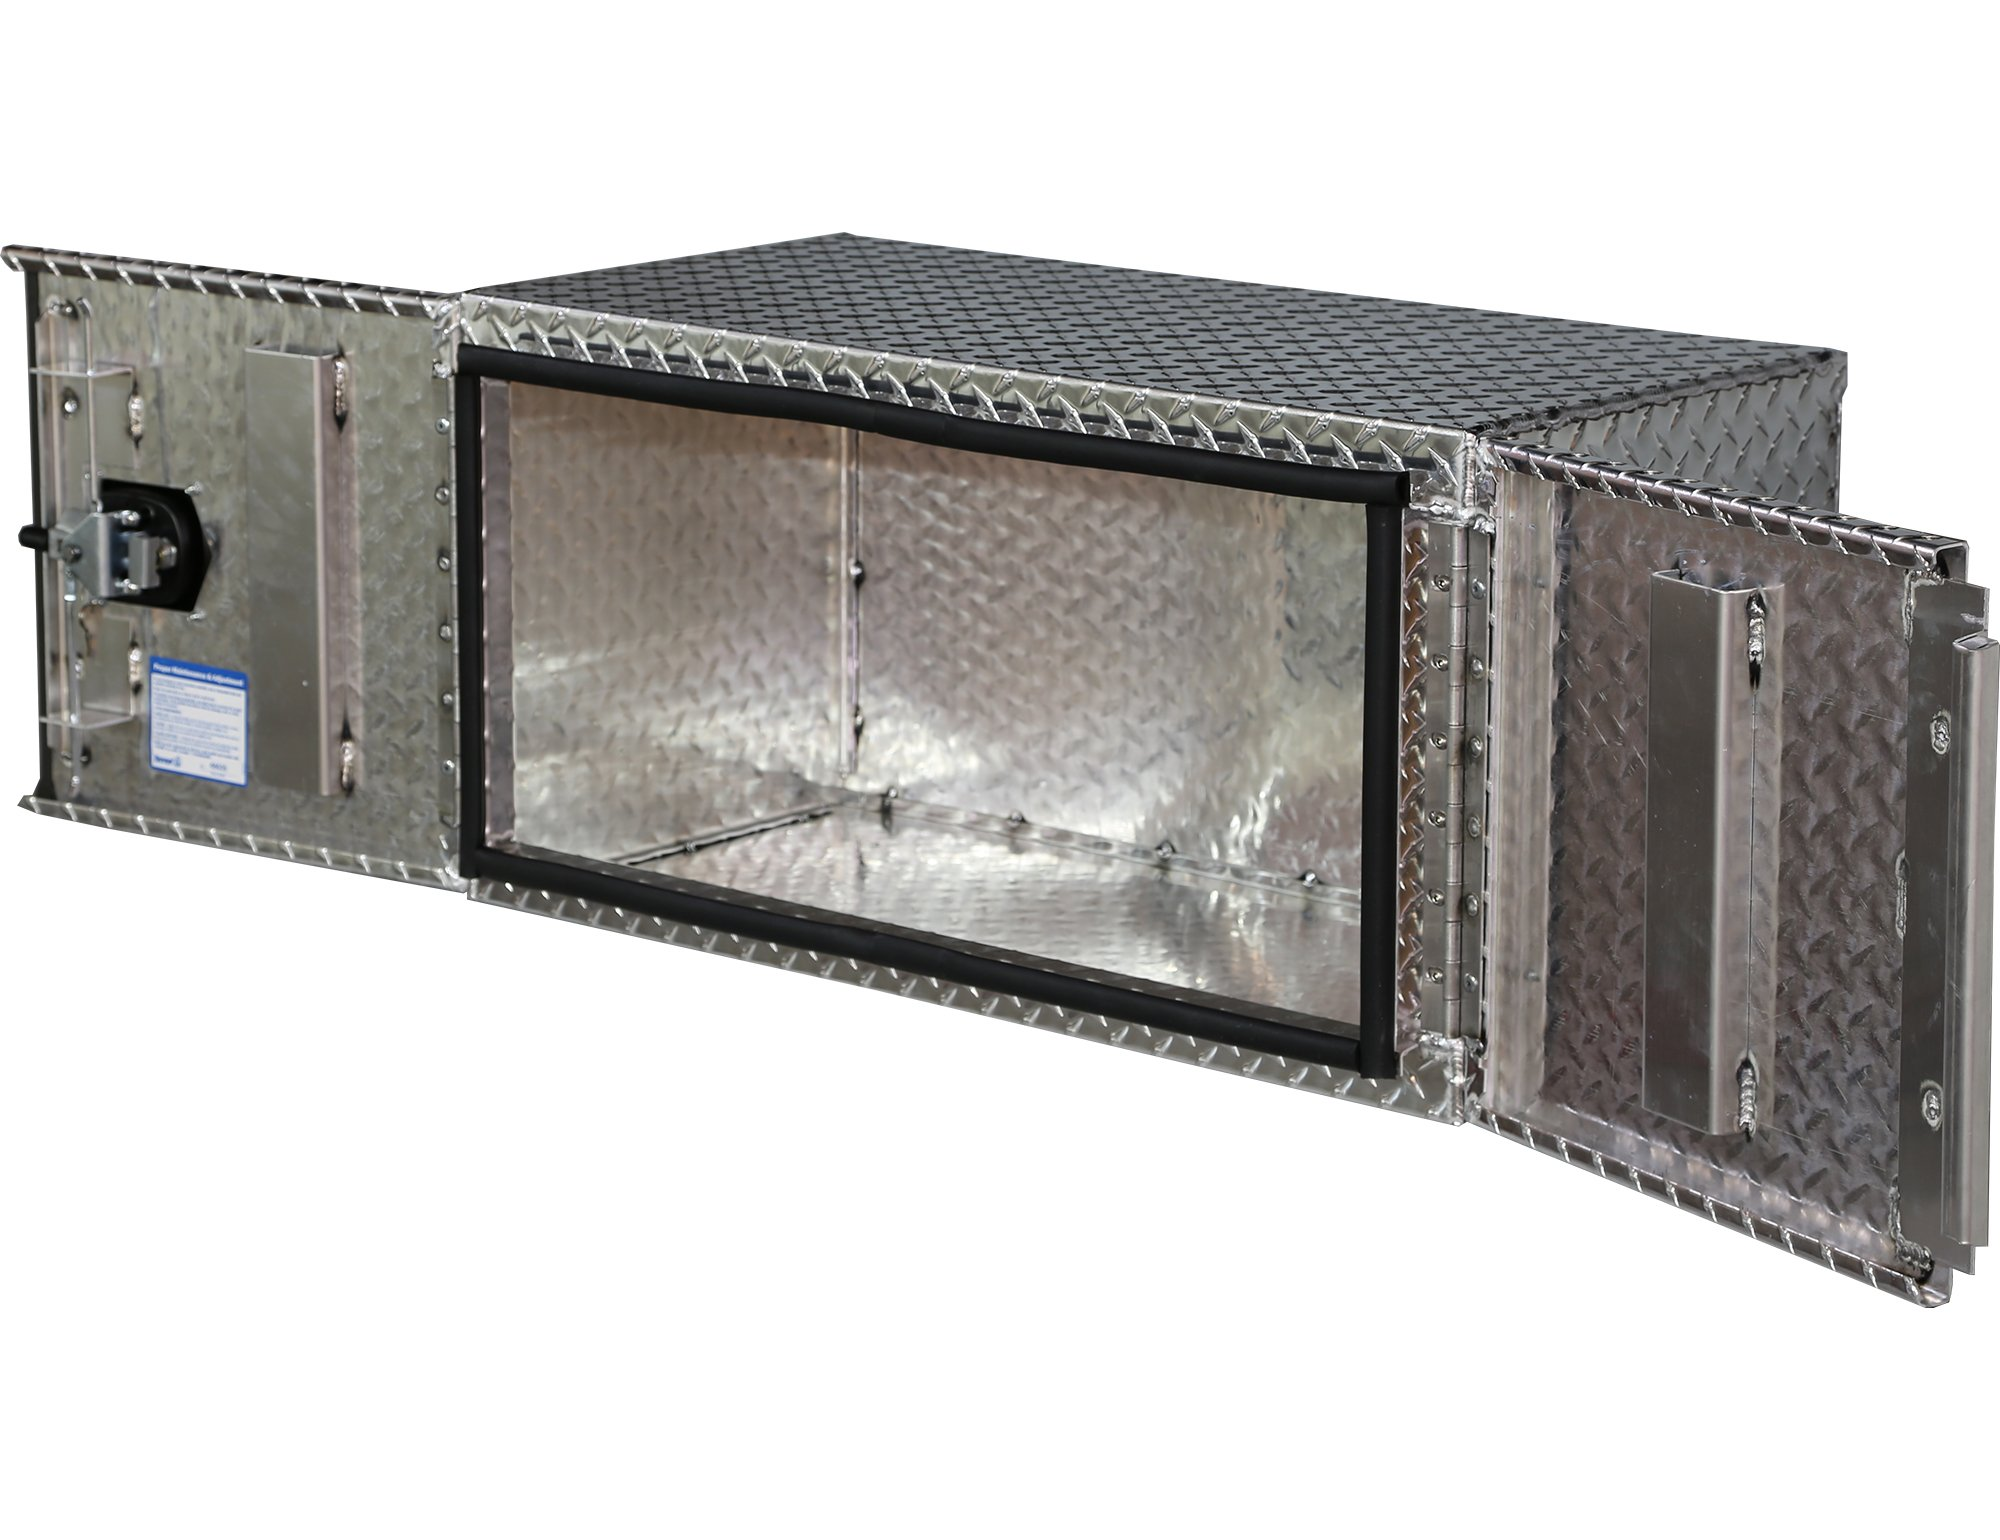 Buyers Products Diamond Tread Aluminum Underbody Truck Box w/Barn Door (24x24x48 Inch) by Buyers Products (Image #2)